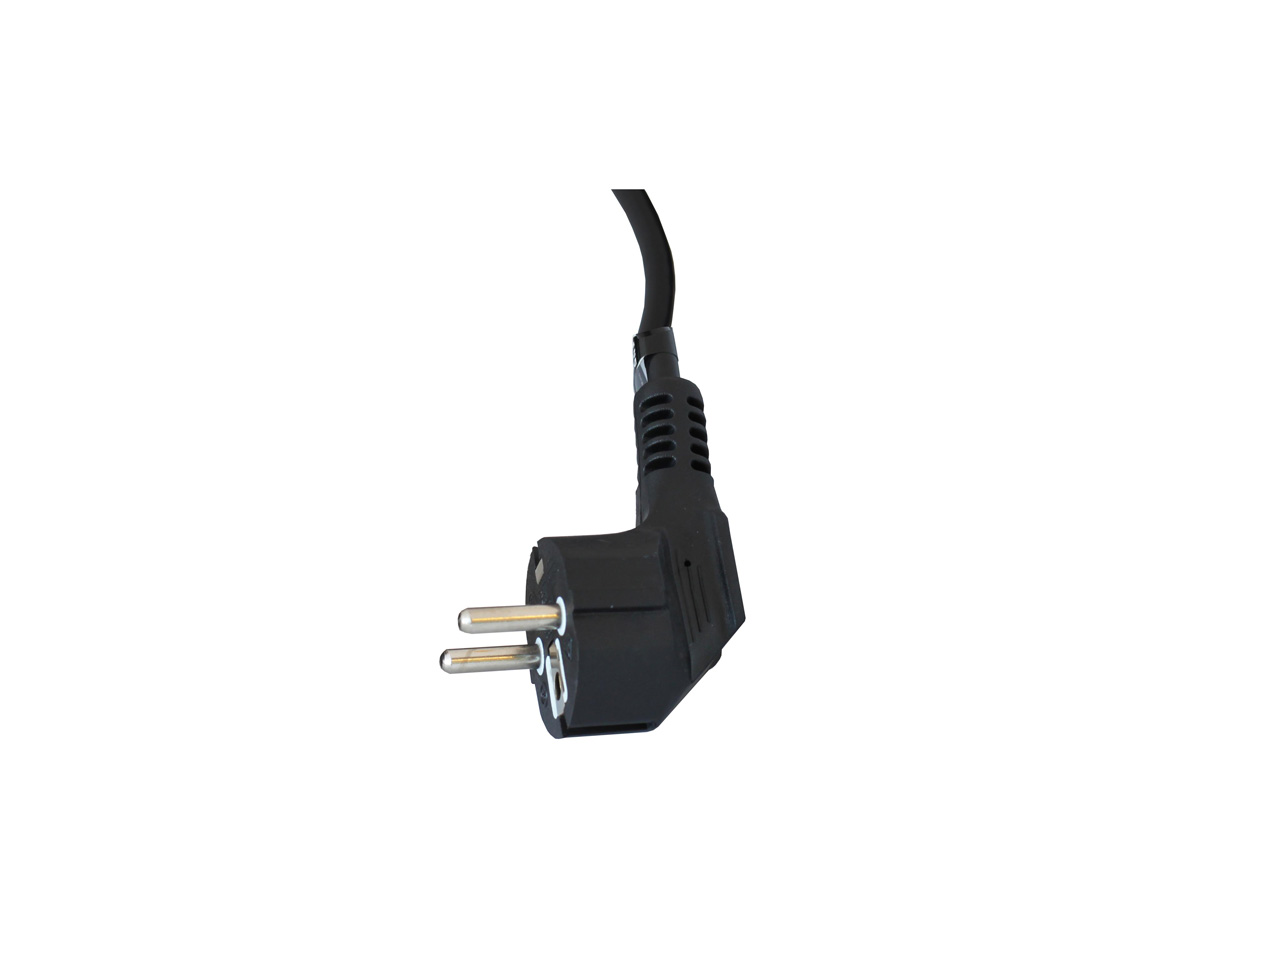 ALG-02EU-Power-Cord.jpg